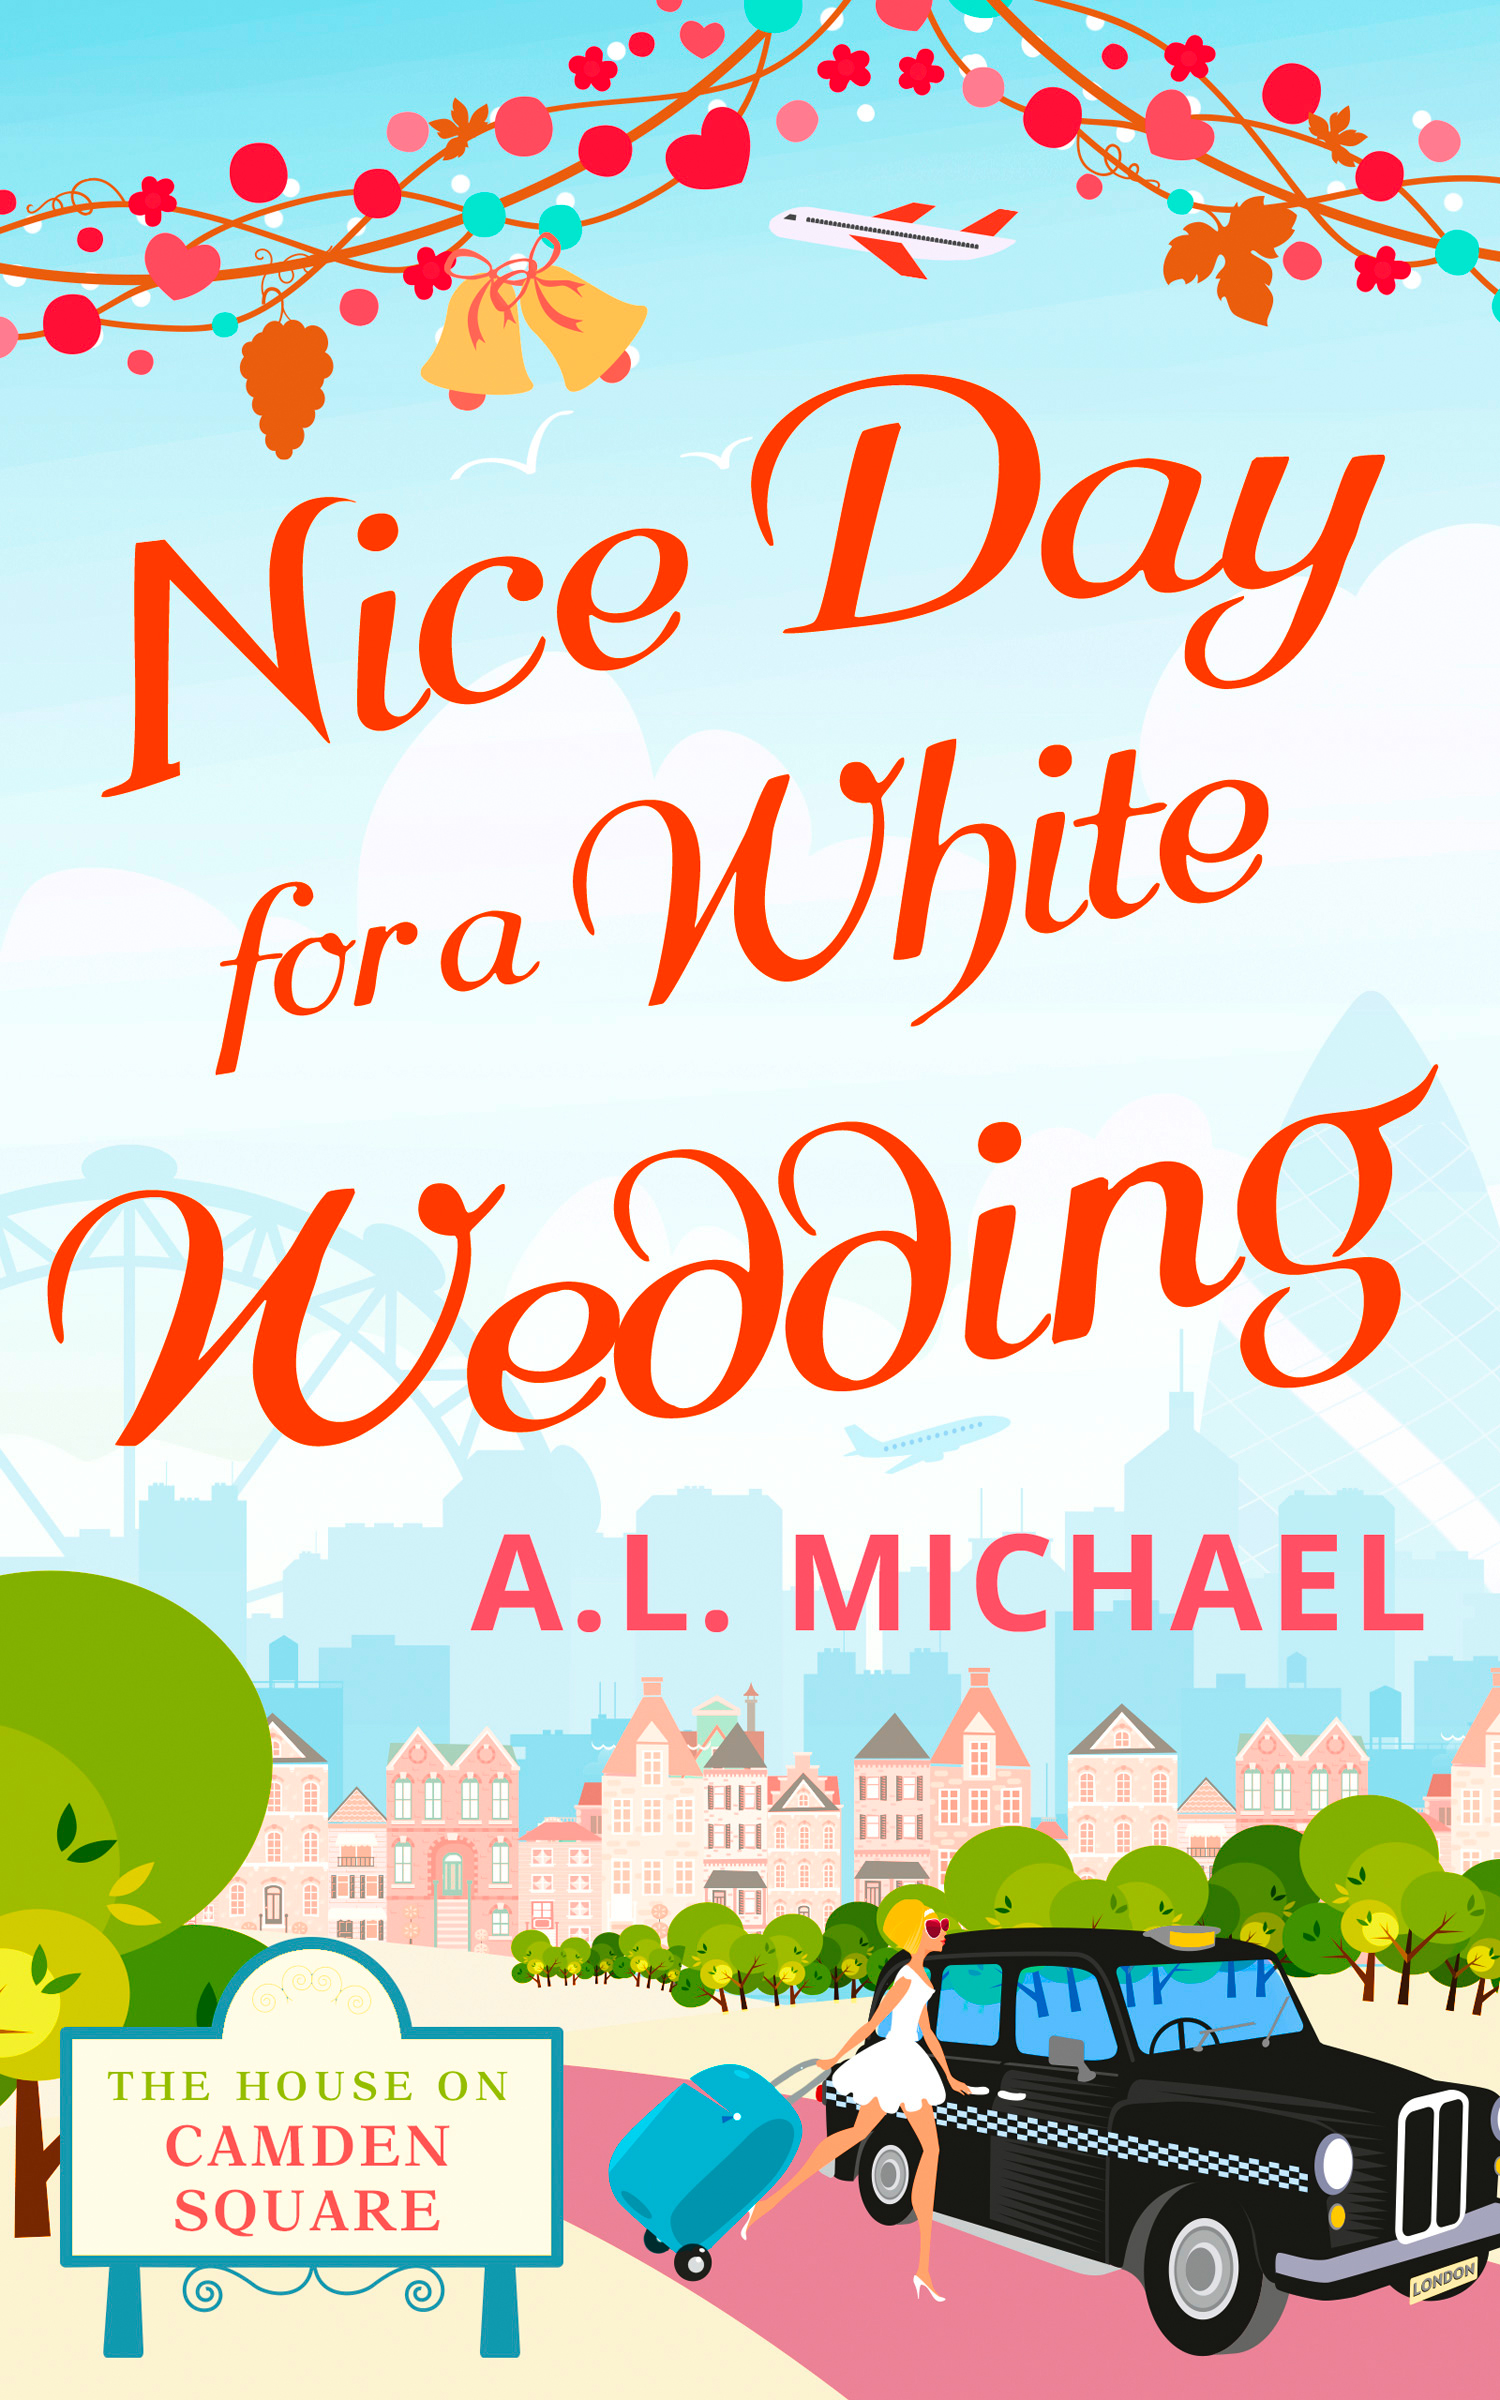 Nice Day For A White Wedding